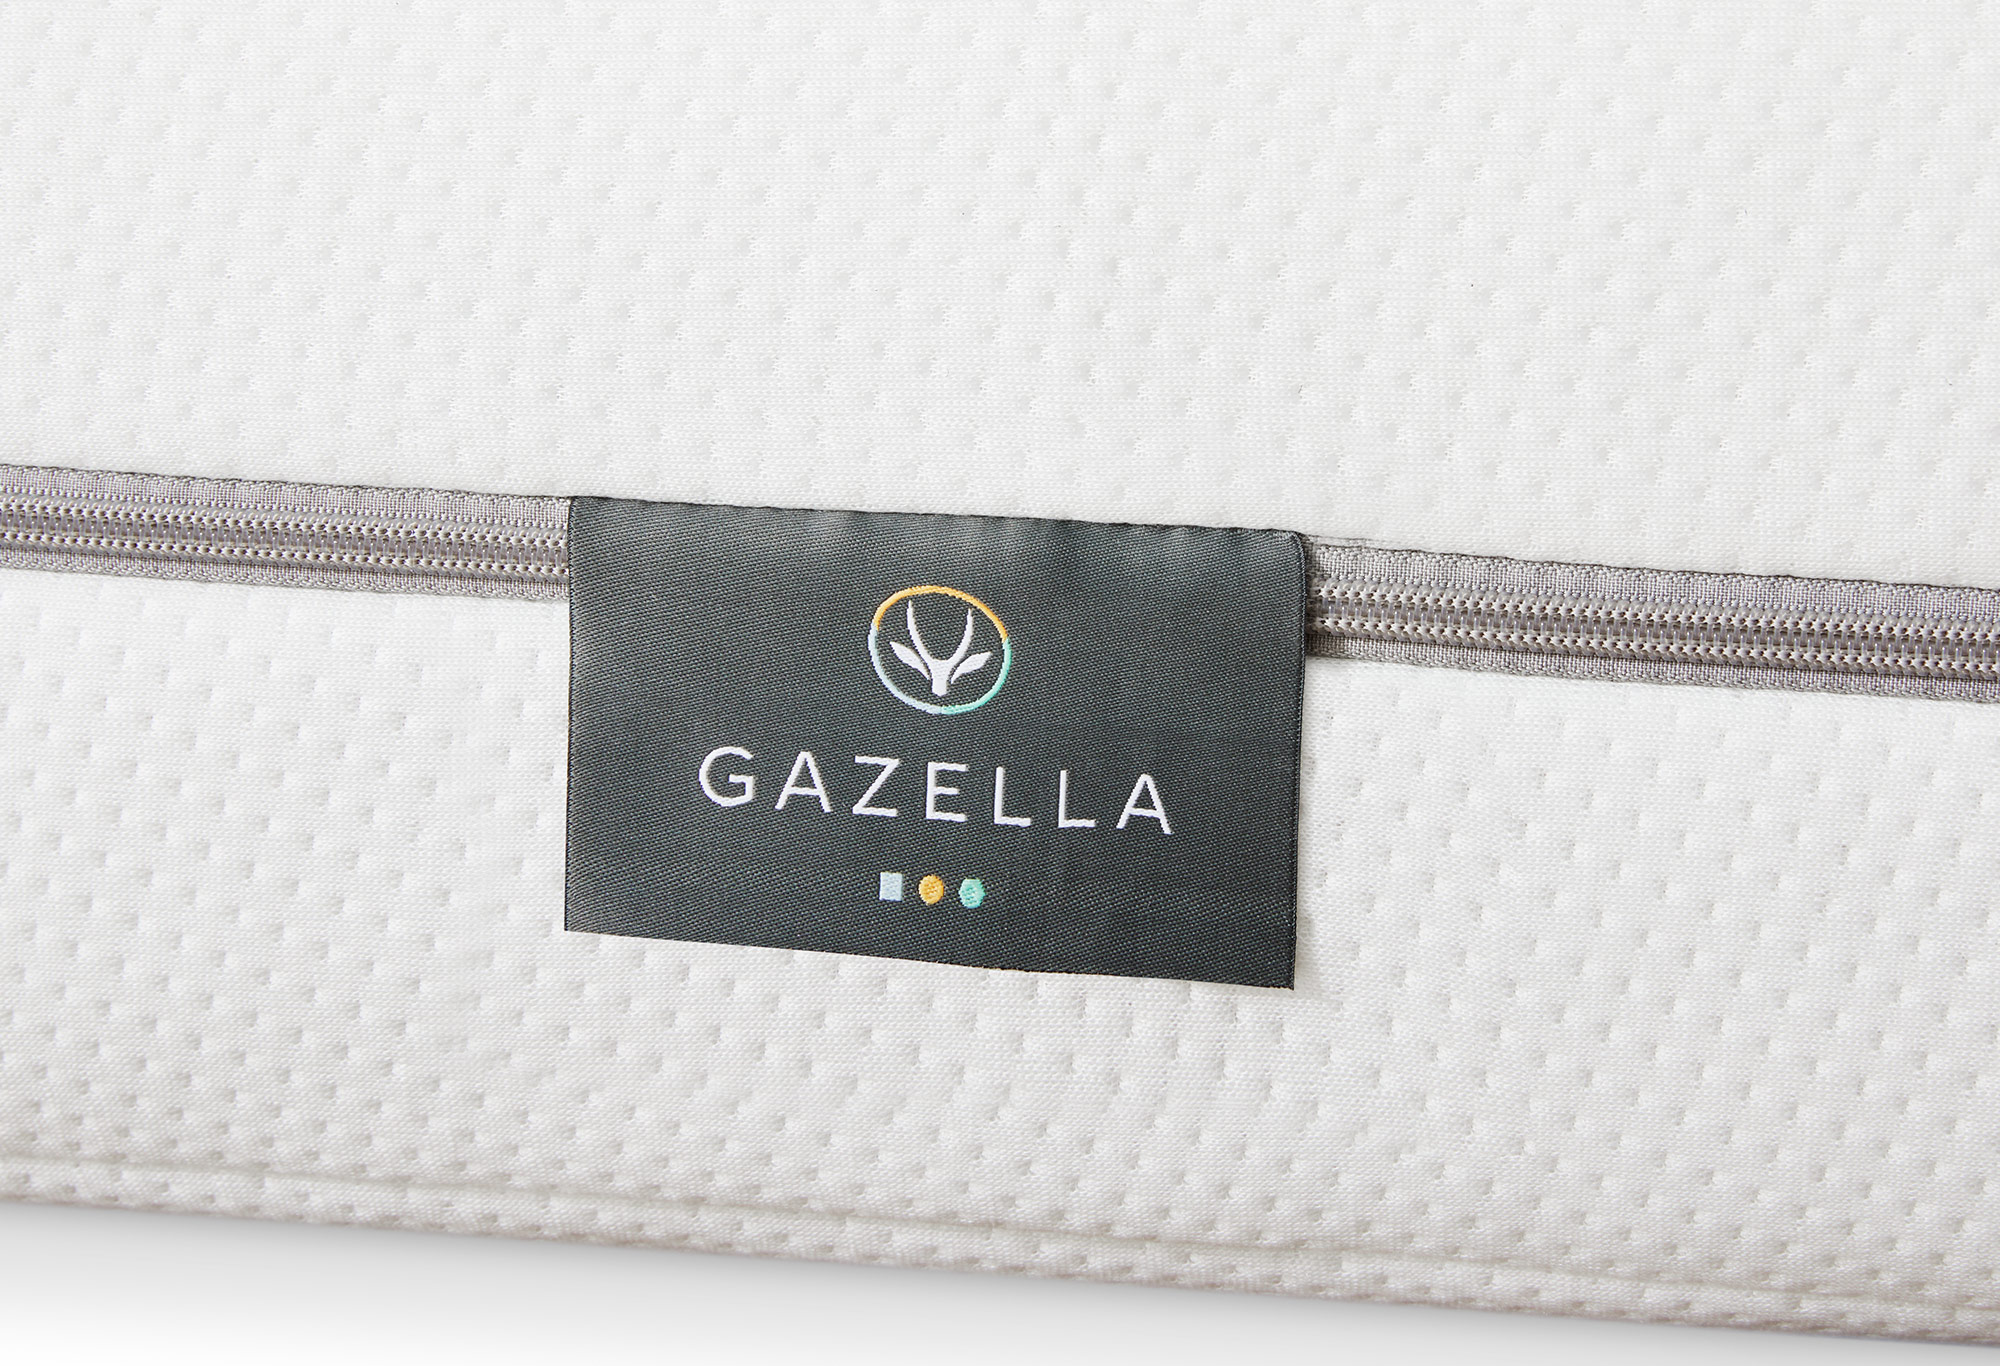 Gazella Comfort I Pocketvering Matras Detail | Swiss Sense